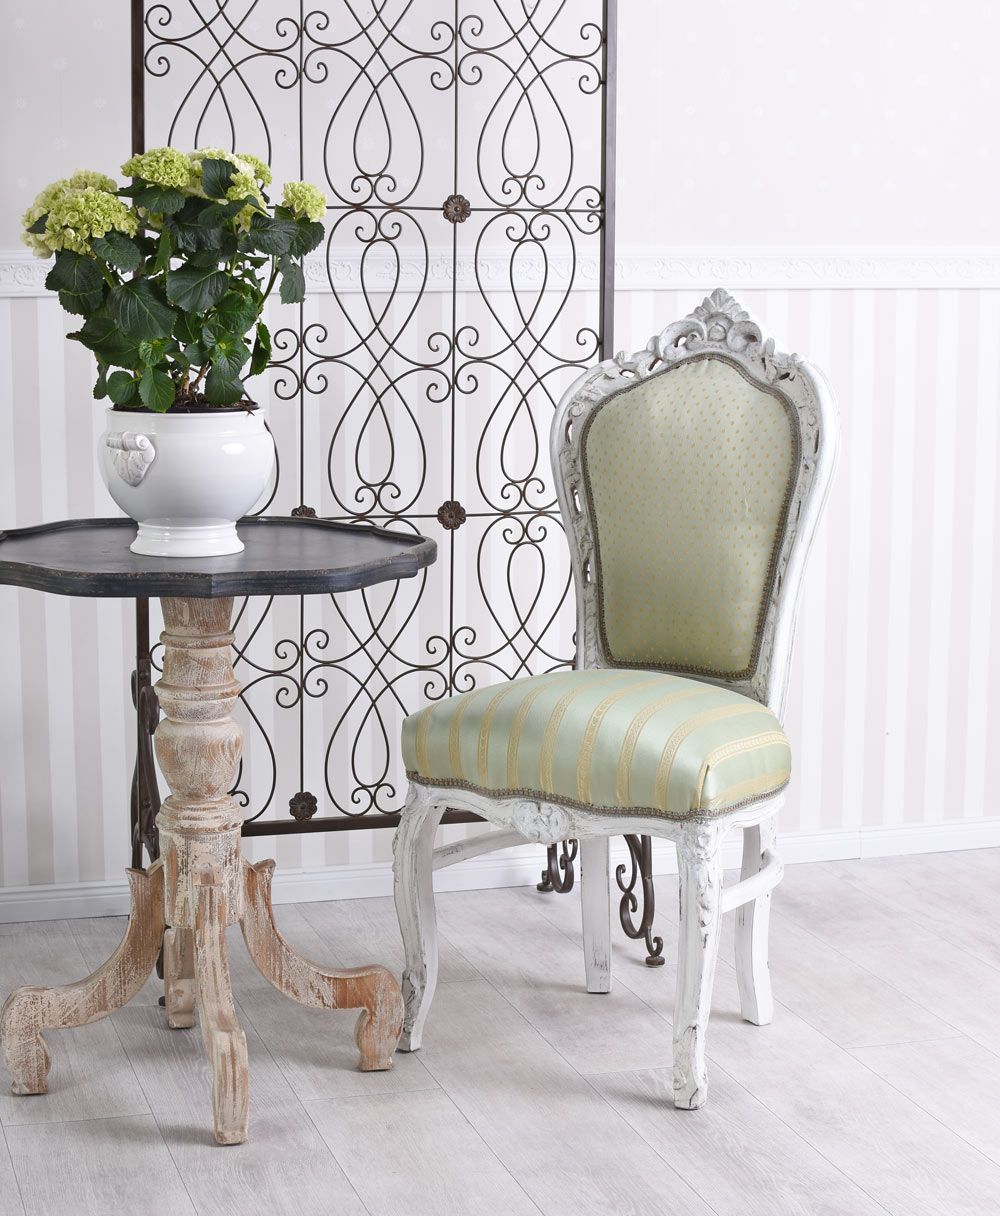 Kitchen Armchairs: Dining Chair Baroque Kitchen Upholstered Armchair